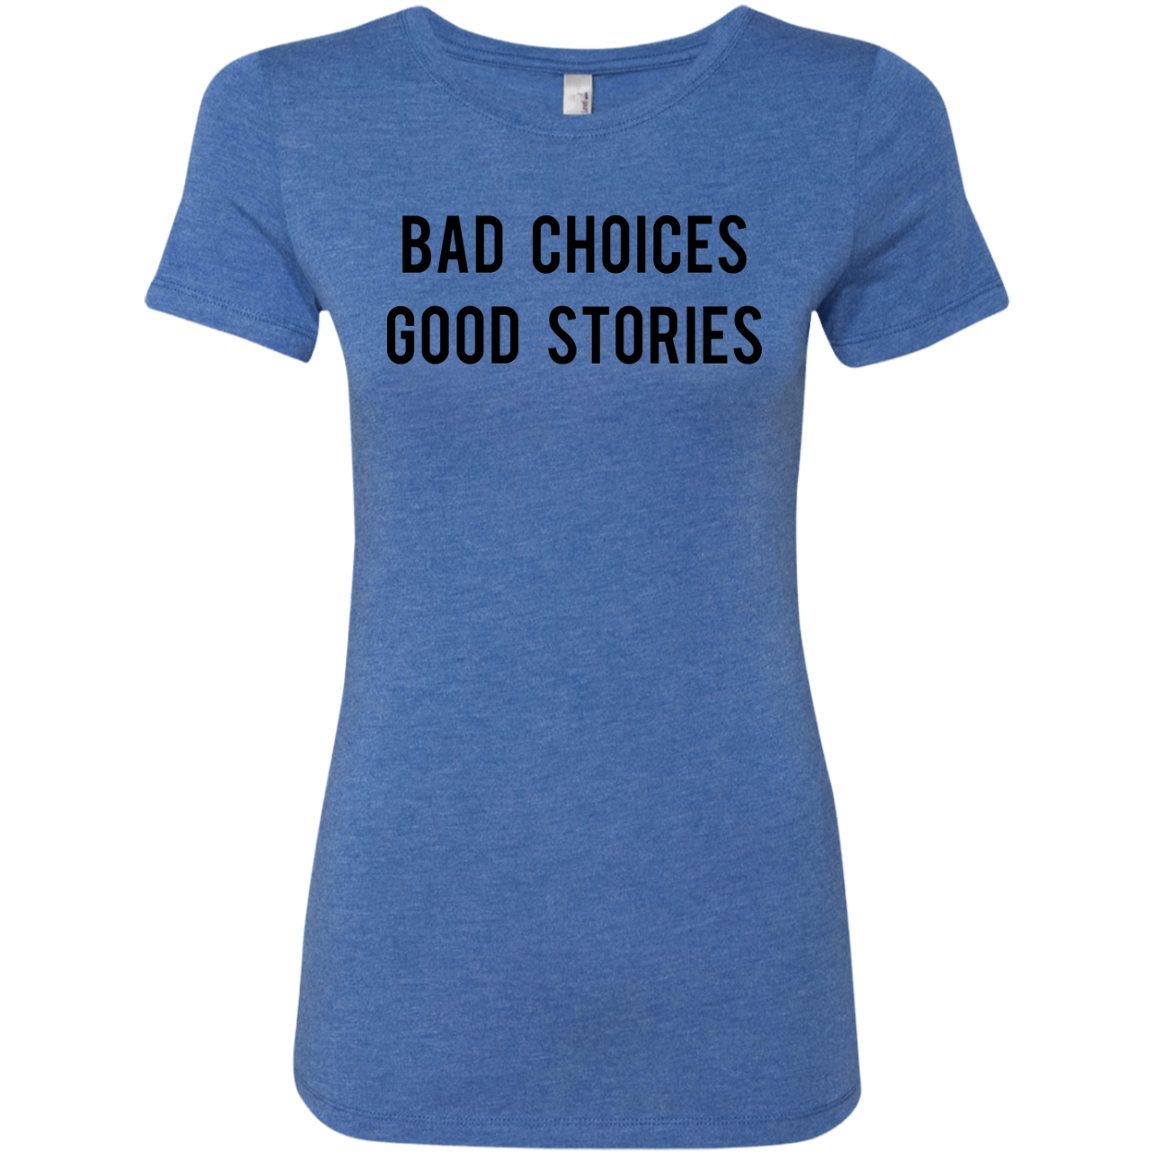 Bad Choices Good Stories Women's Classic Tee - Trendy Tees